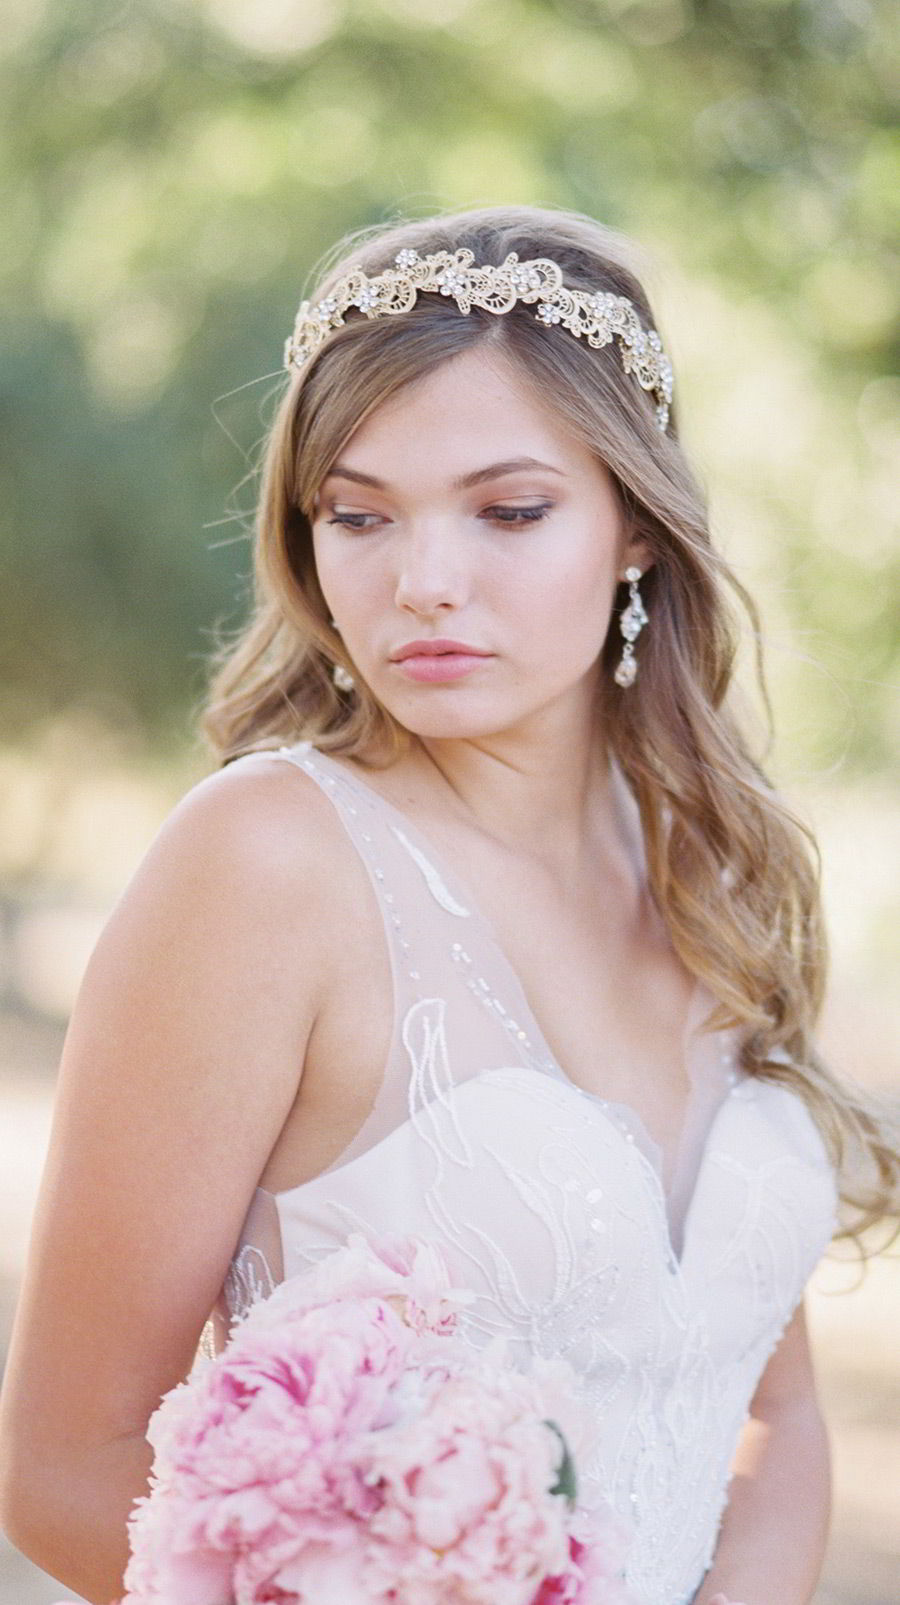 bel aire bridal accessories 6713 rustic gold headpiece rhinestone flowers drop earrings romantic wedding dress main